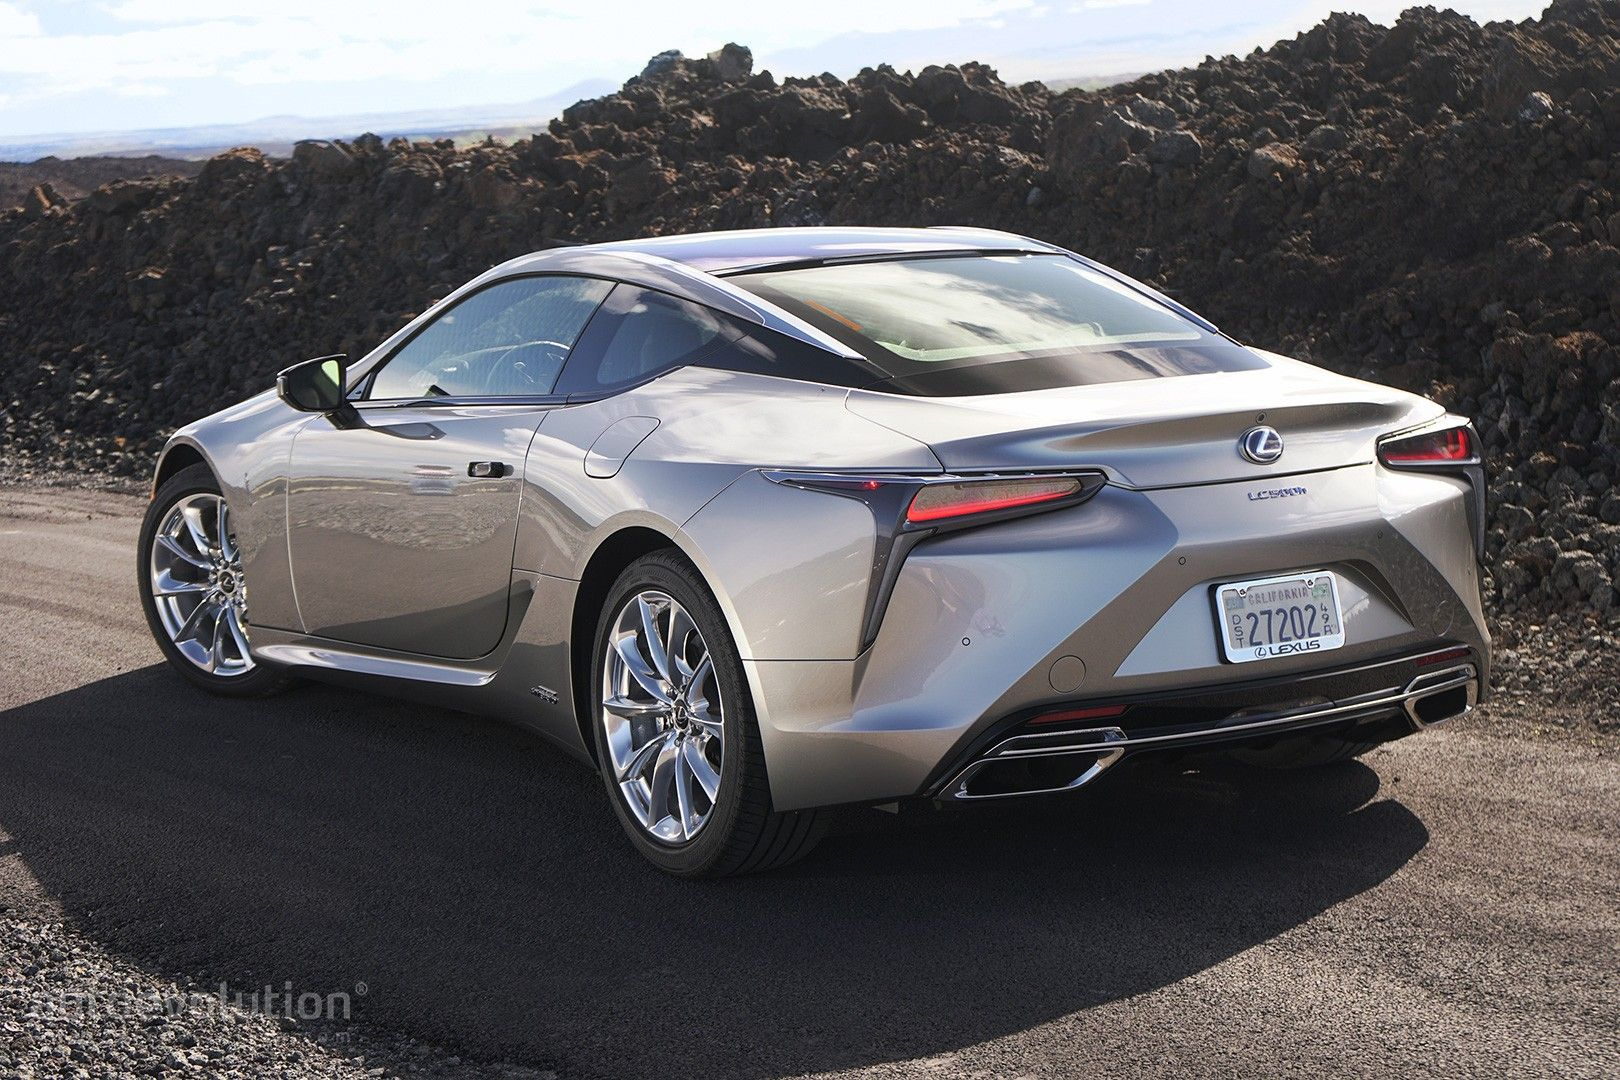 2017 Lexus Lc 500 Lc 500h Review Testdrive Lexus Lc Lexus Automotive Design